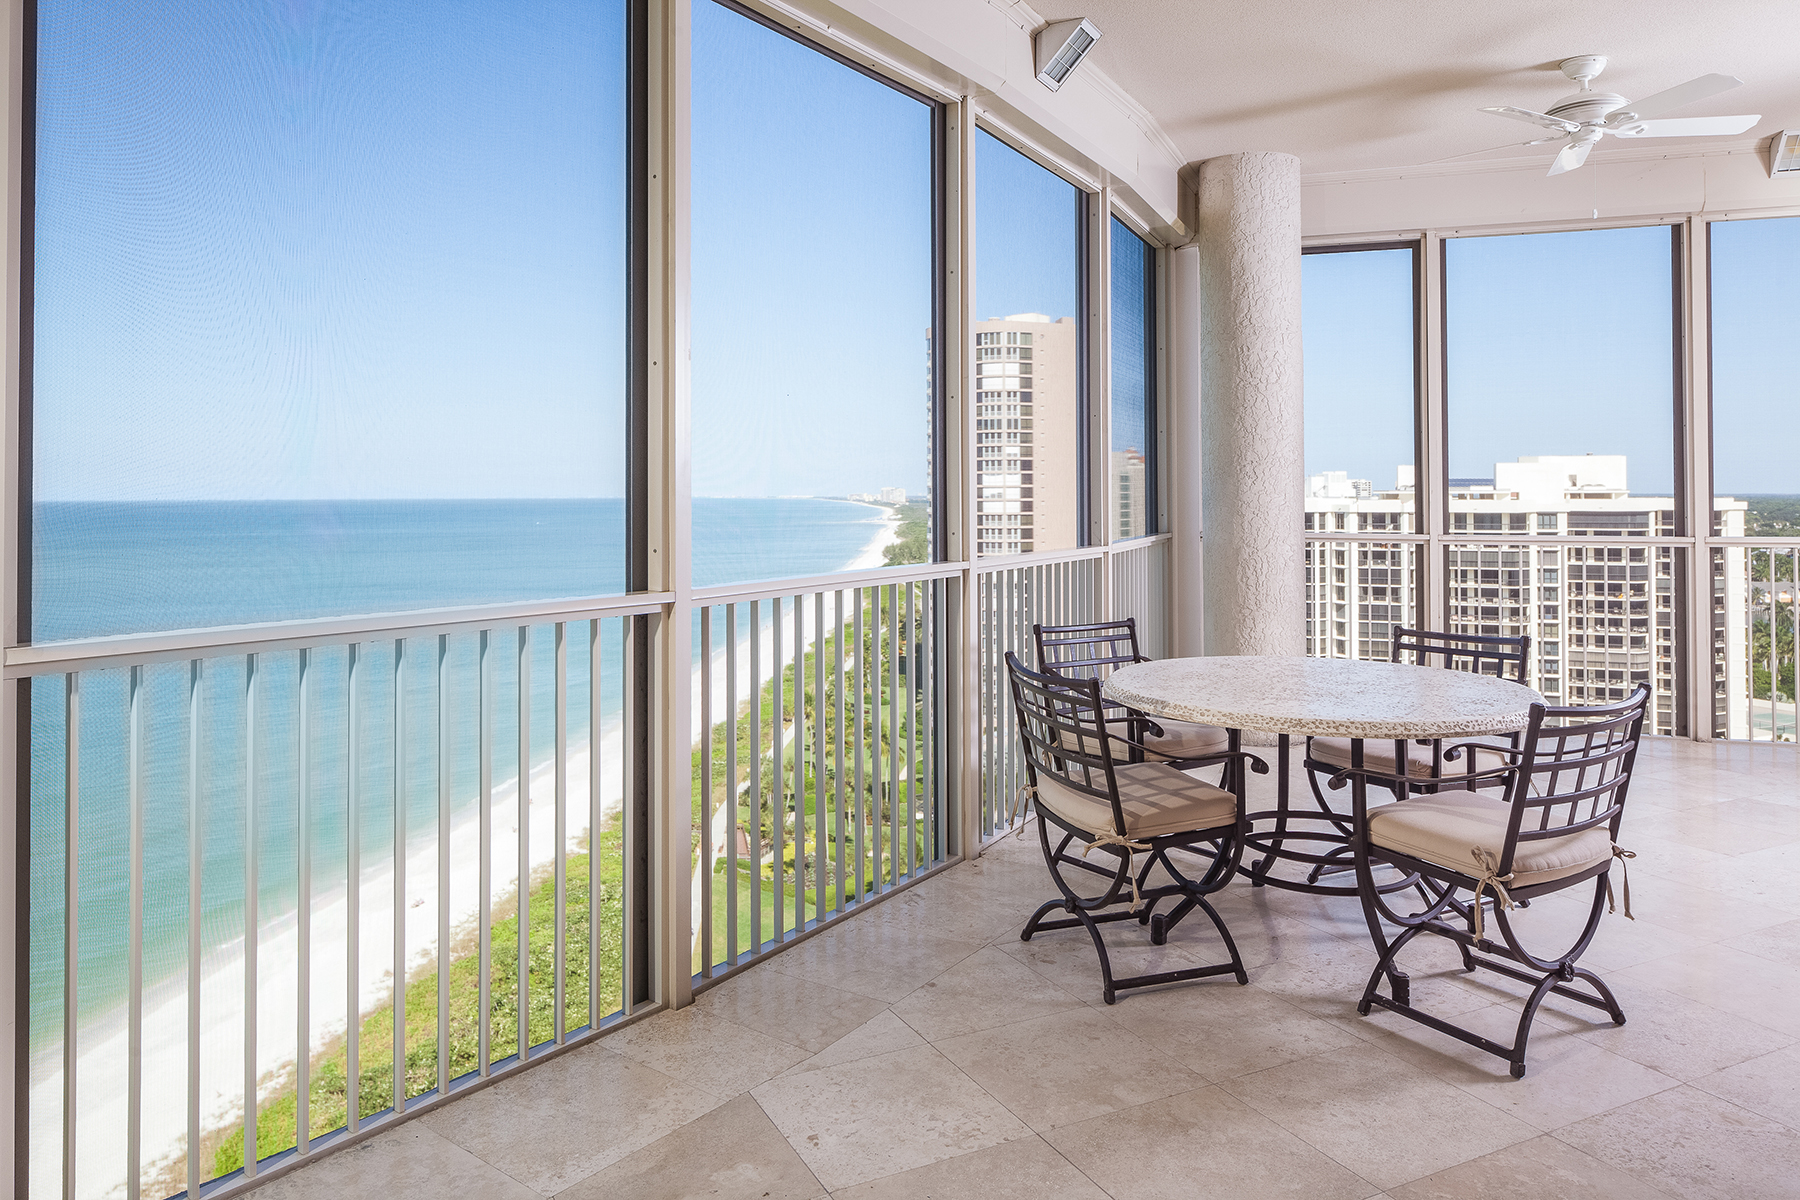 Additional photo for property listing at PARK SHORE - LE RIVAGE 4351  Gulf Shore Blvd  N 18N,  Naples, Florida 34103 United States